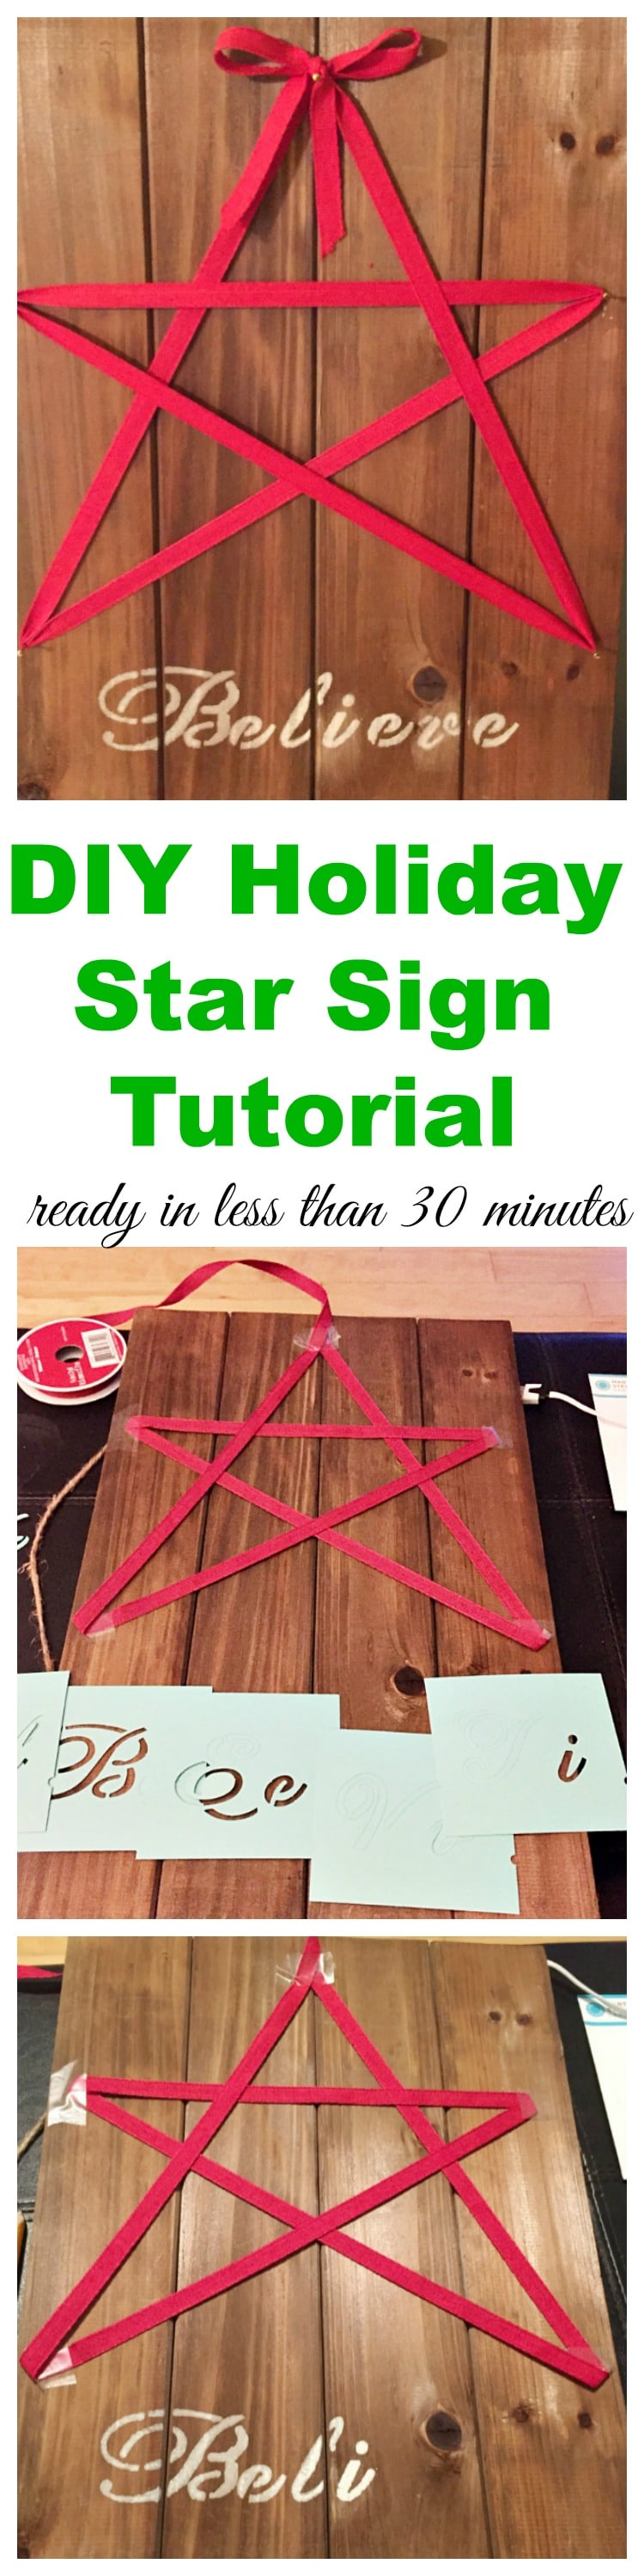 DIY Holiday Star Sign Tutorial